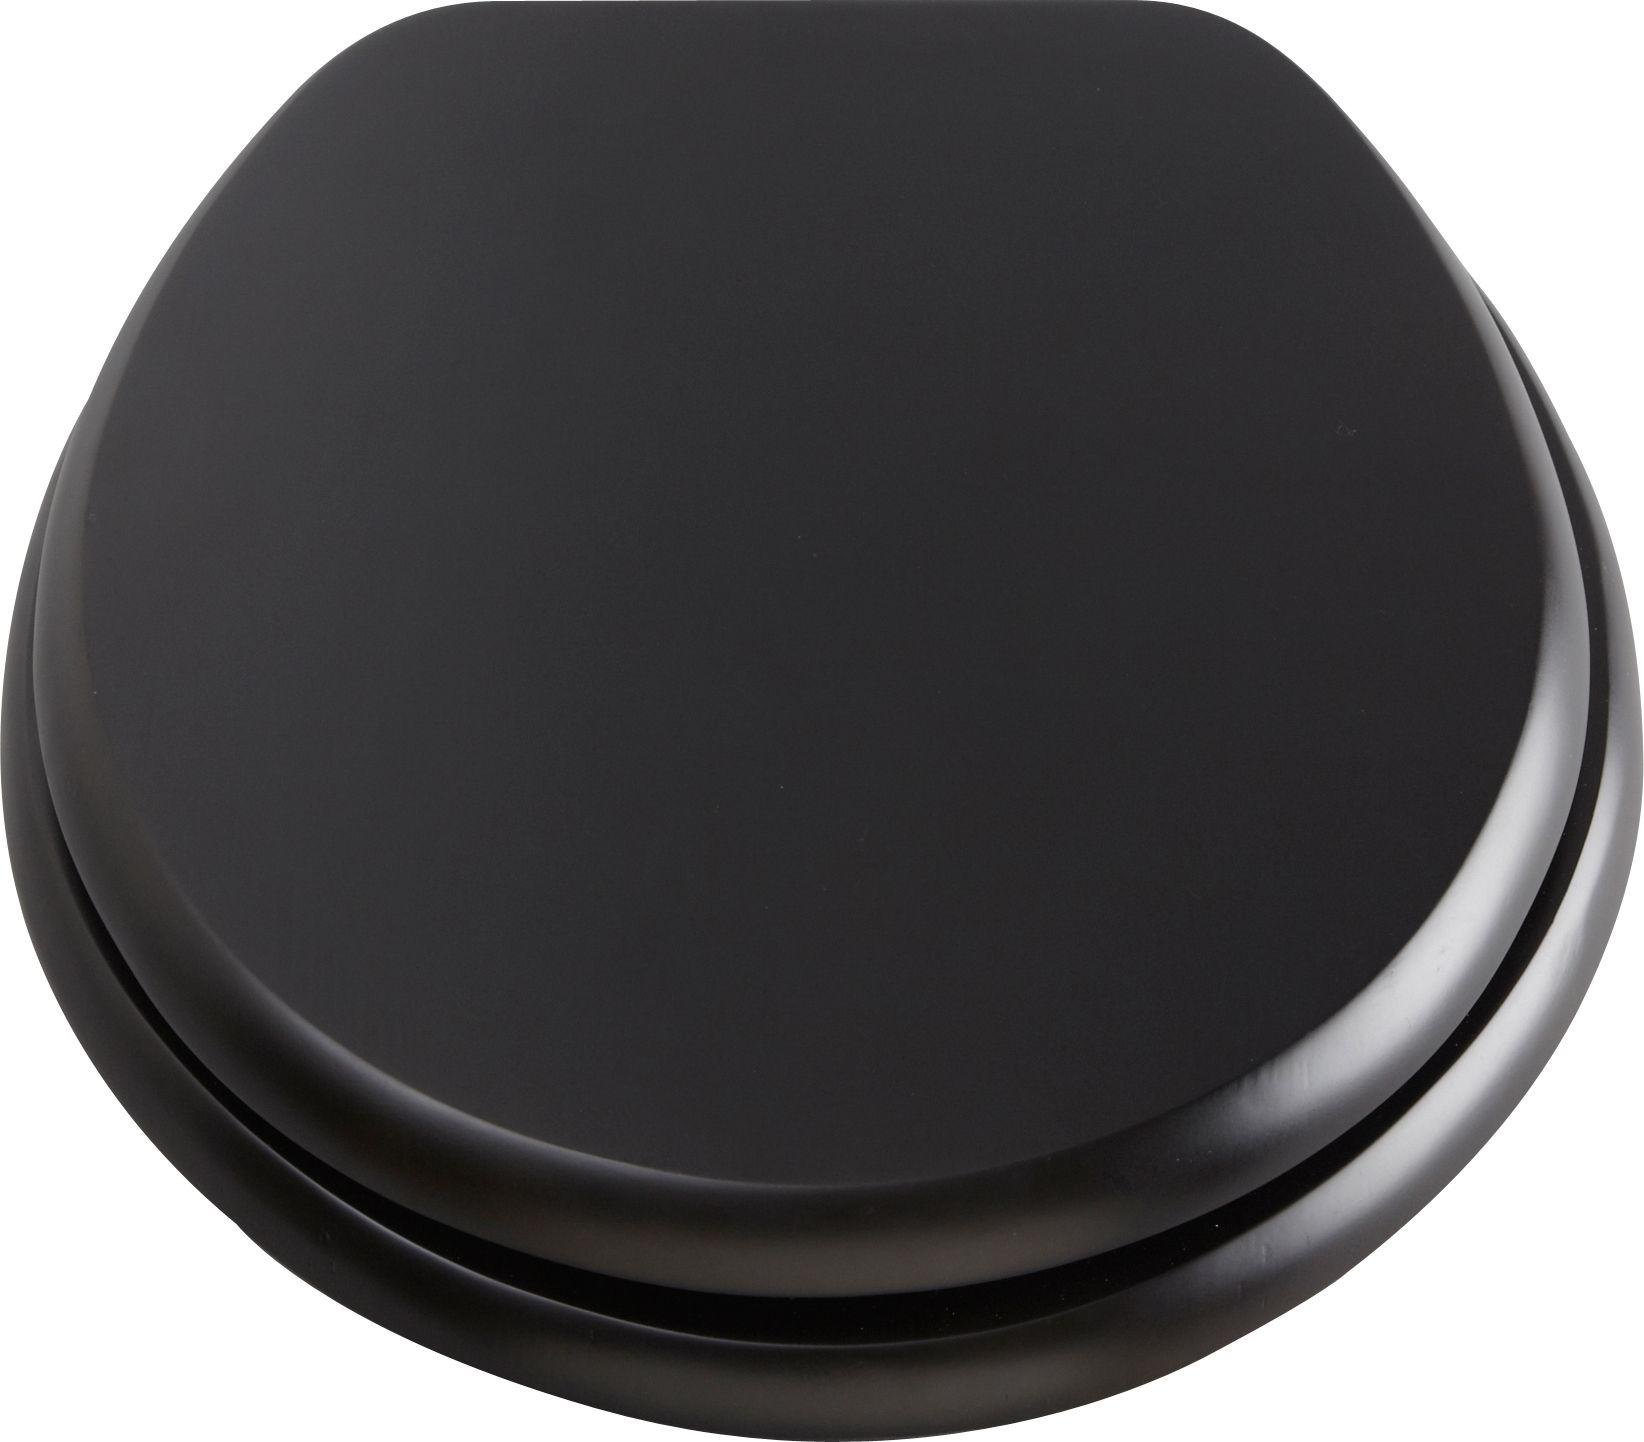 Argos Home - Solid Wood Slow Close - Toilet Seat - Black